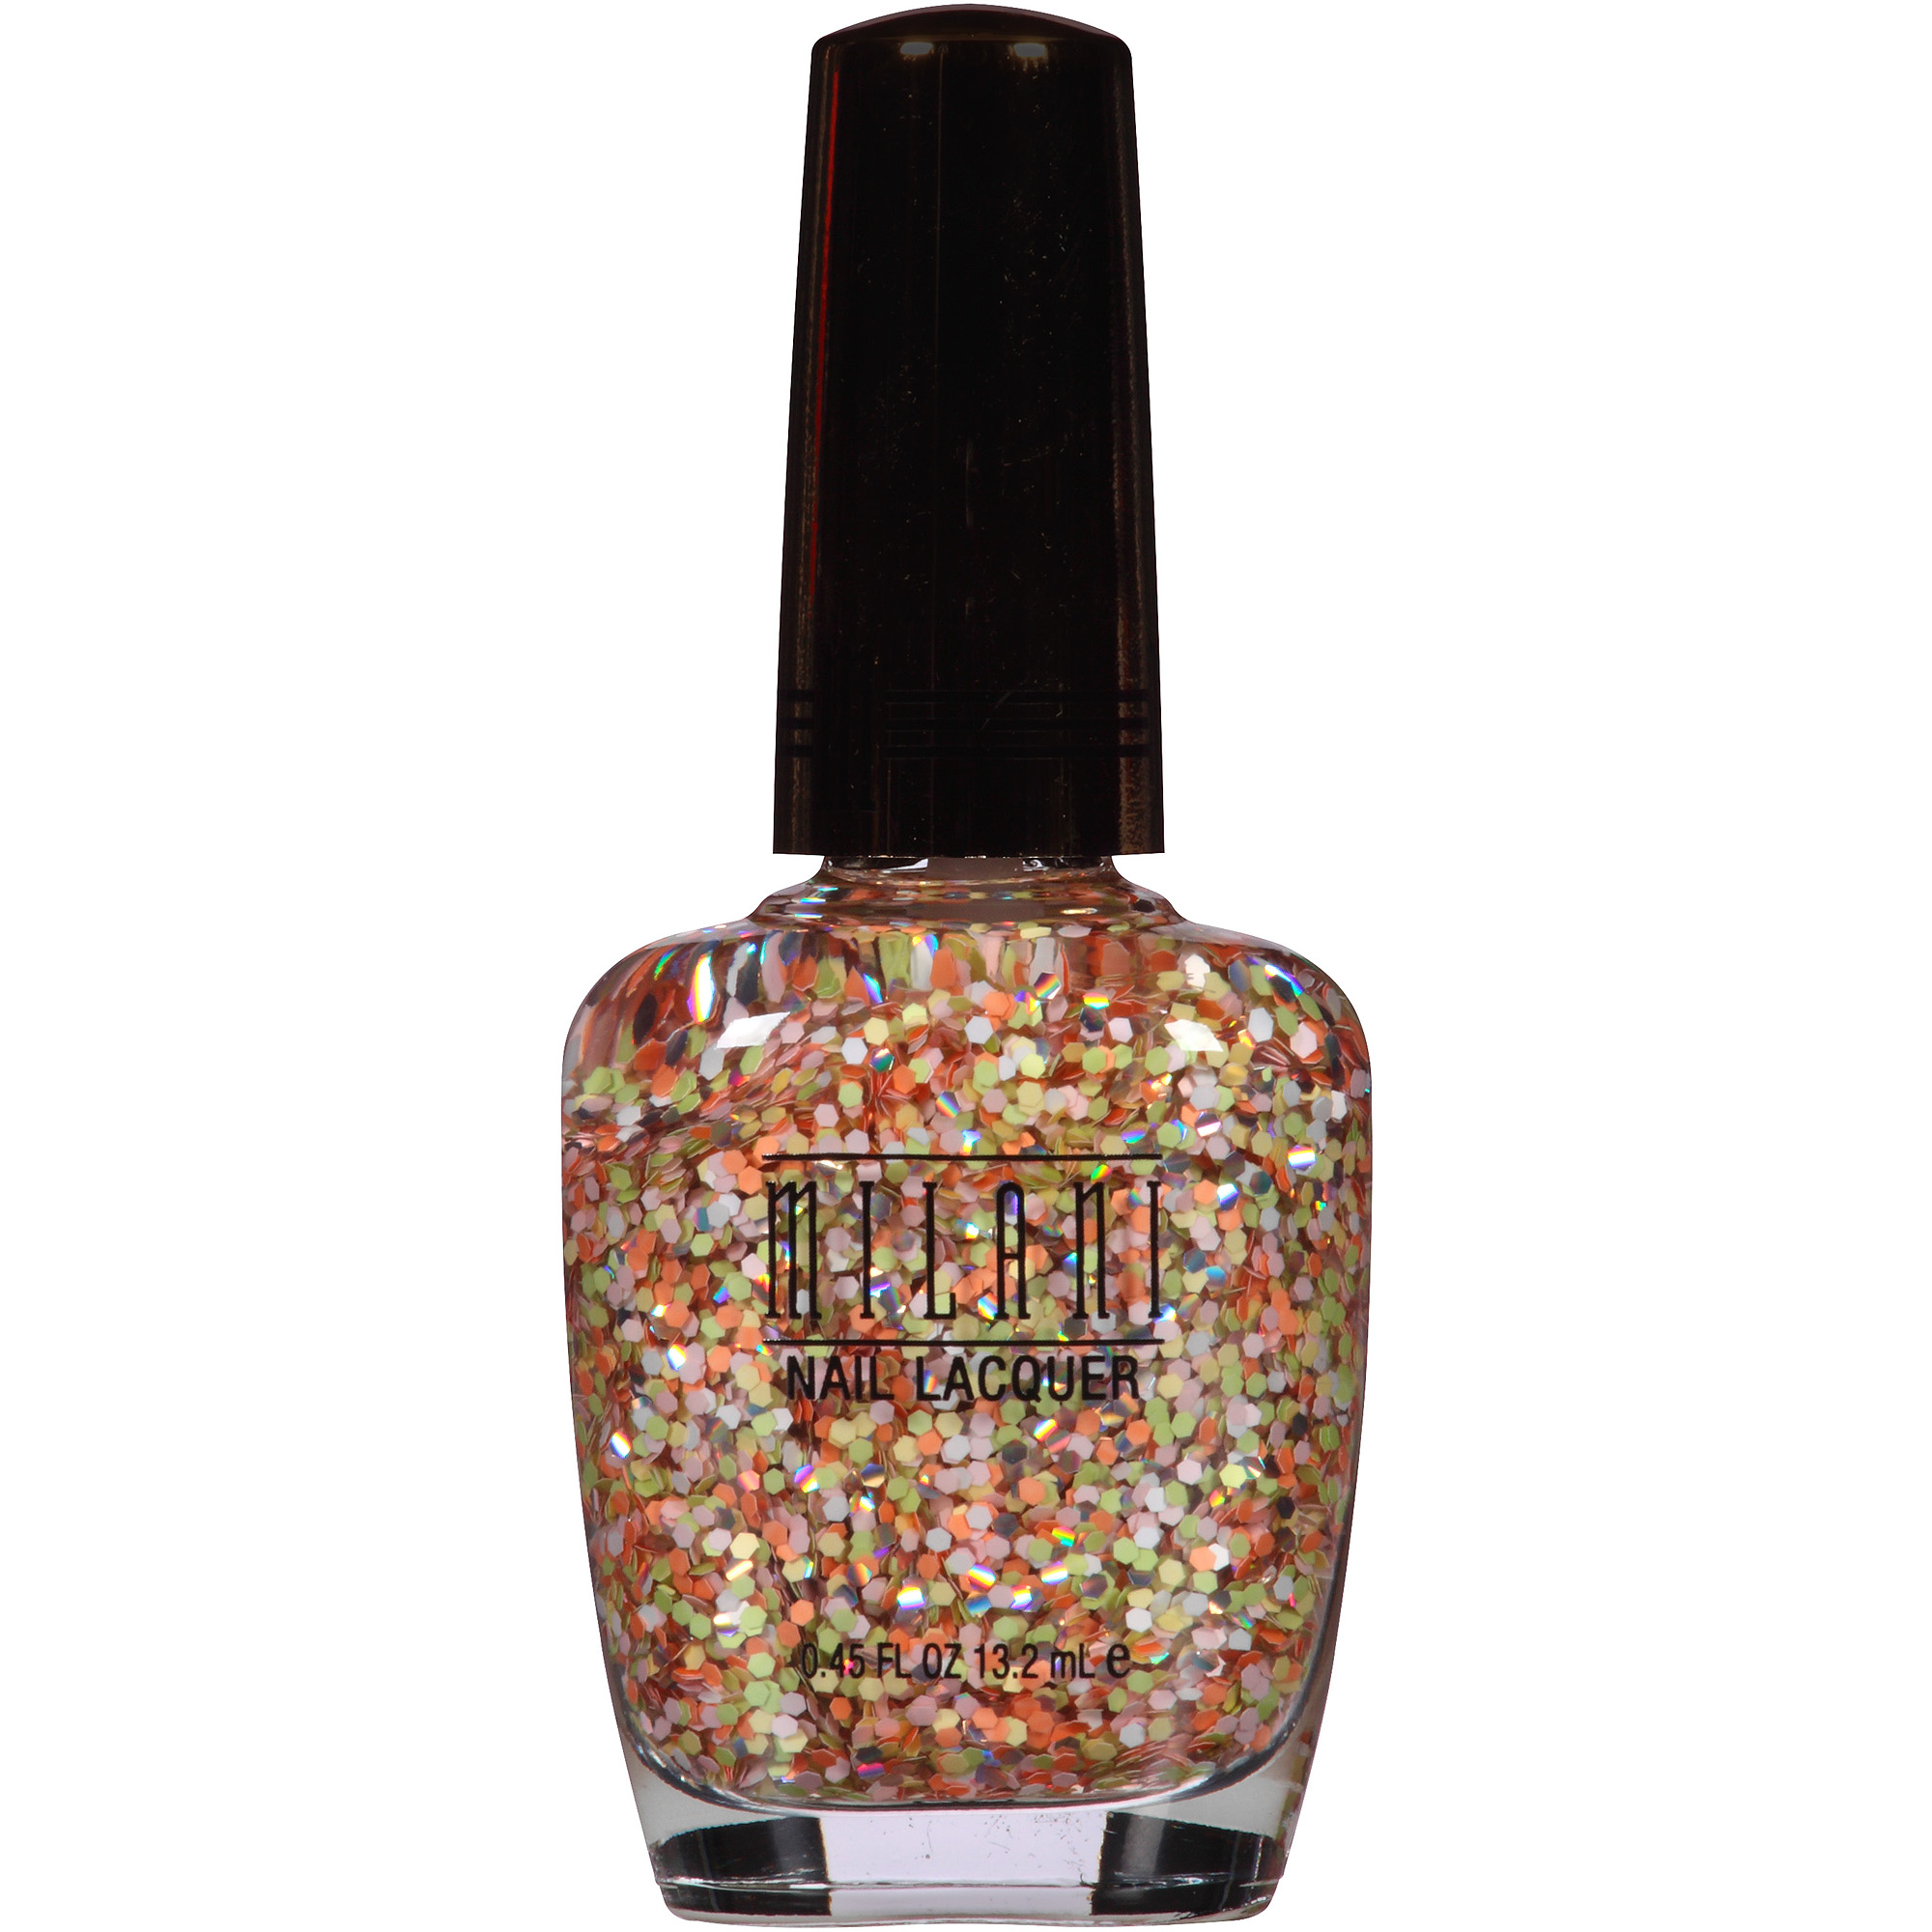 Milani Gold Label Specialty Nail Lacquer, 08 Sugar Rush, 0.45 fl oz